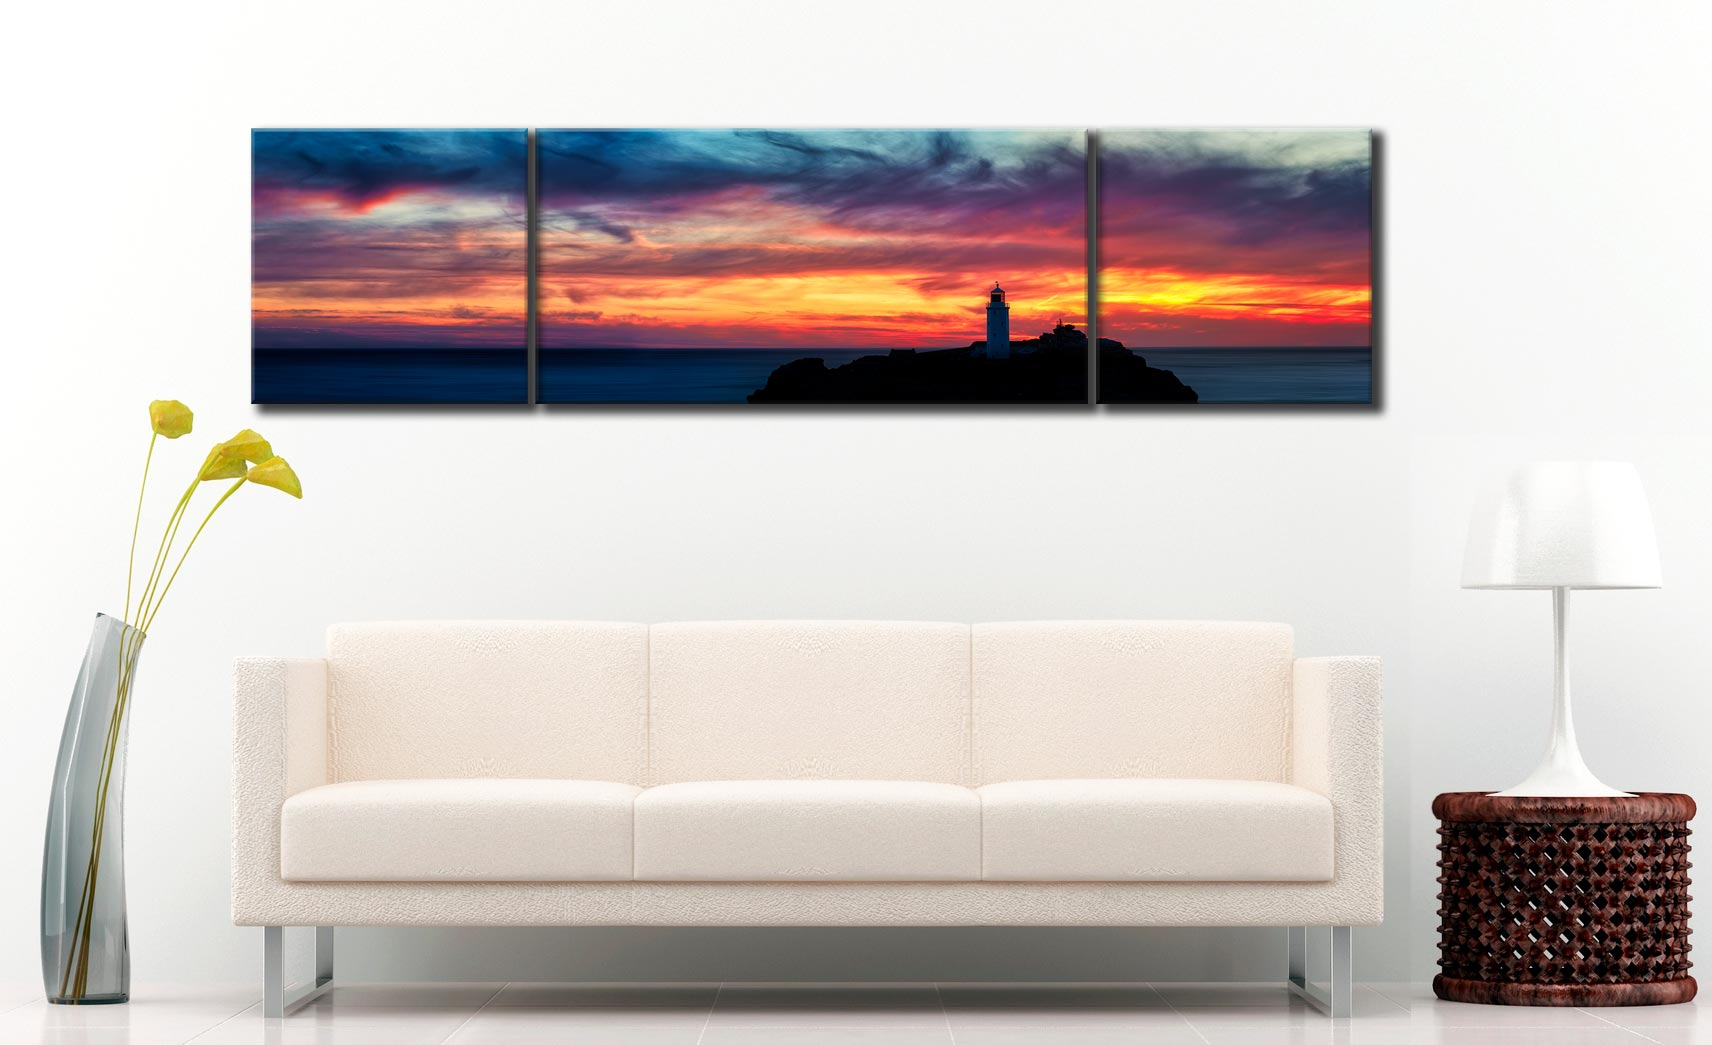 Dusk Skies Over Godrevy Lighthouse - 3 Panel Wide Centre Canvas on Wall